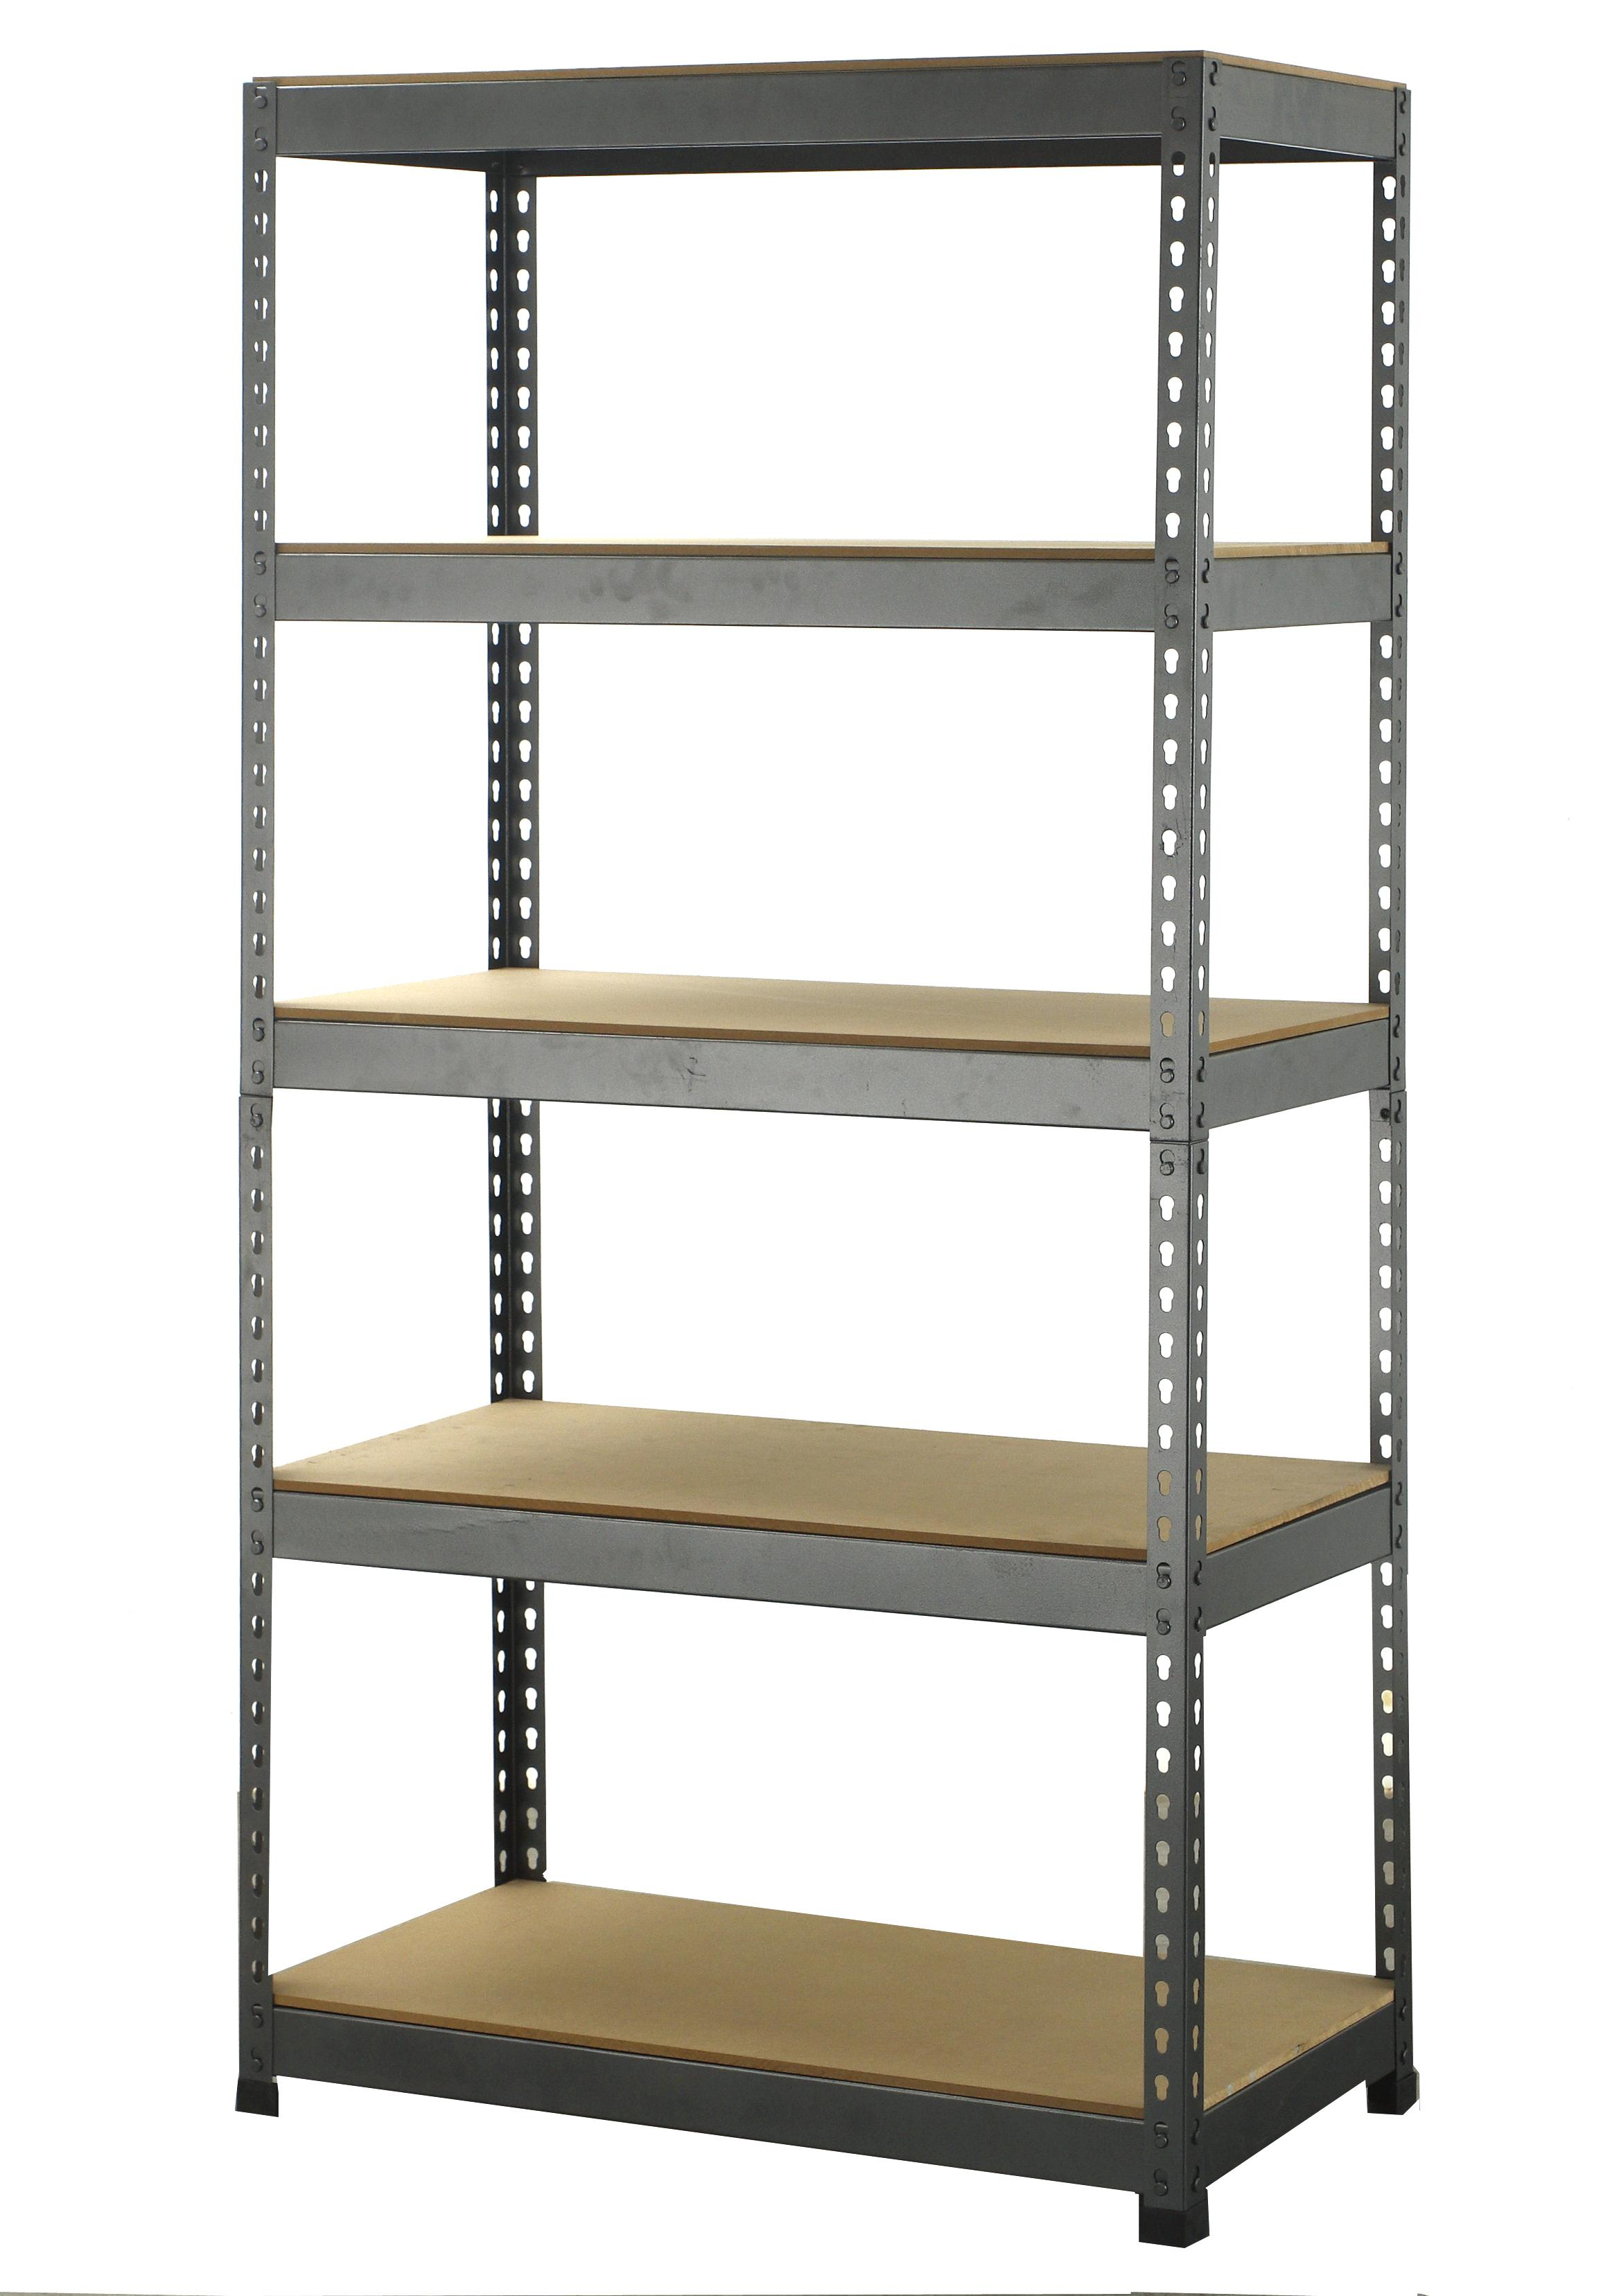 white wooden shelves homebase ideas for walls stock cube floating dvd shelving how much weight can shelf bracket hold large media console foot long closet sneaker organizer wood